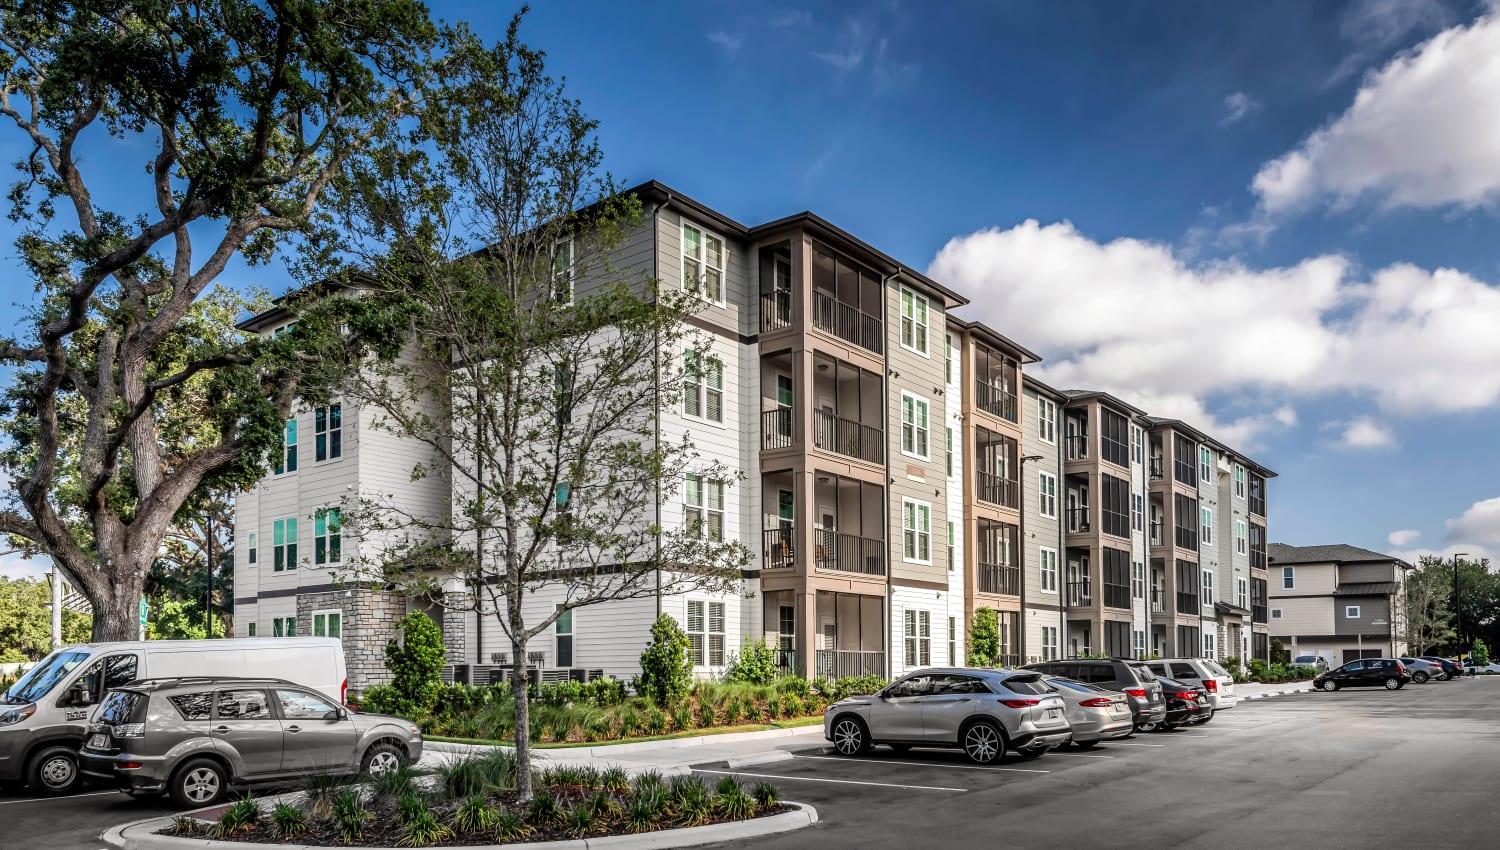 Mature trees and ample parking outside resident buildings at Canopy at Citrus Park in Tampa, Florida